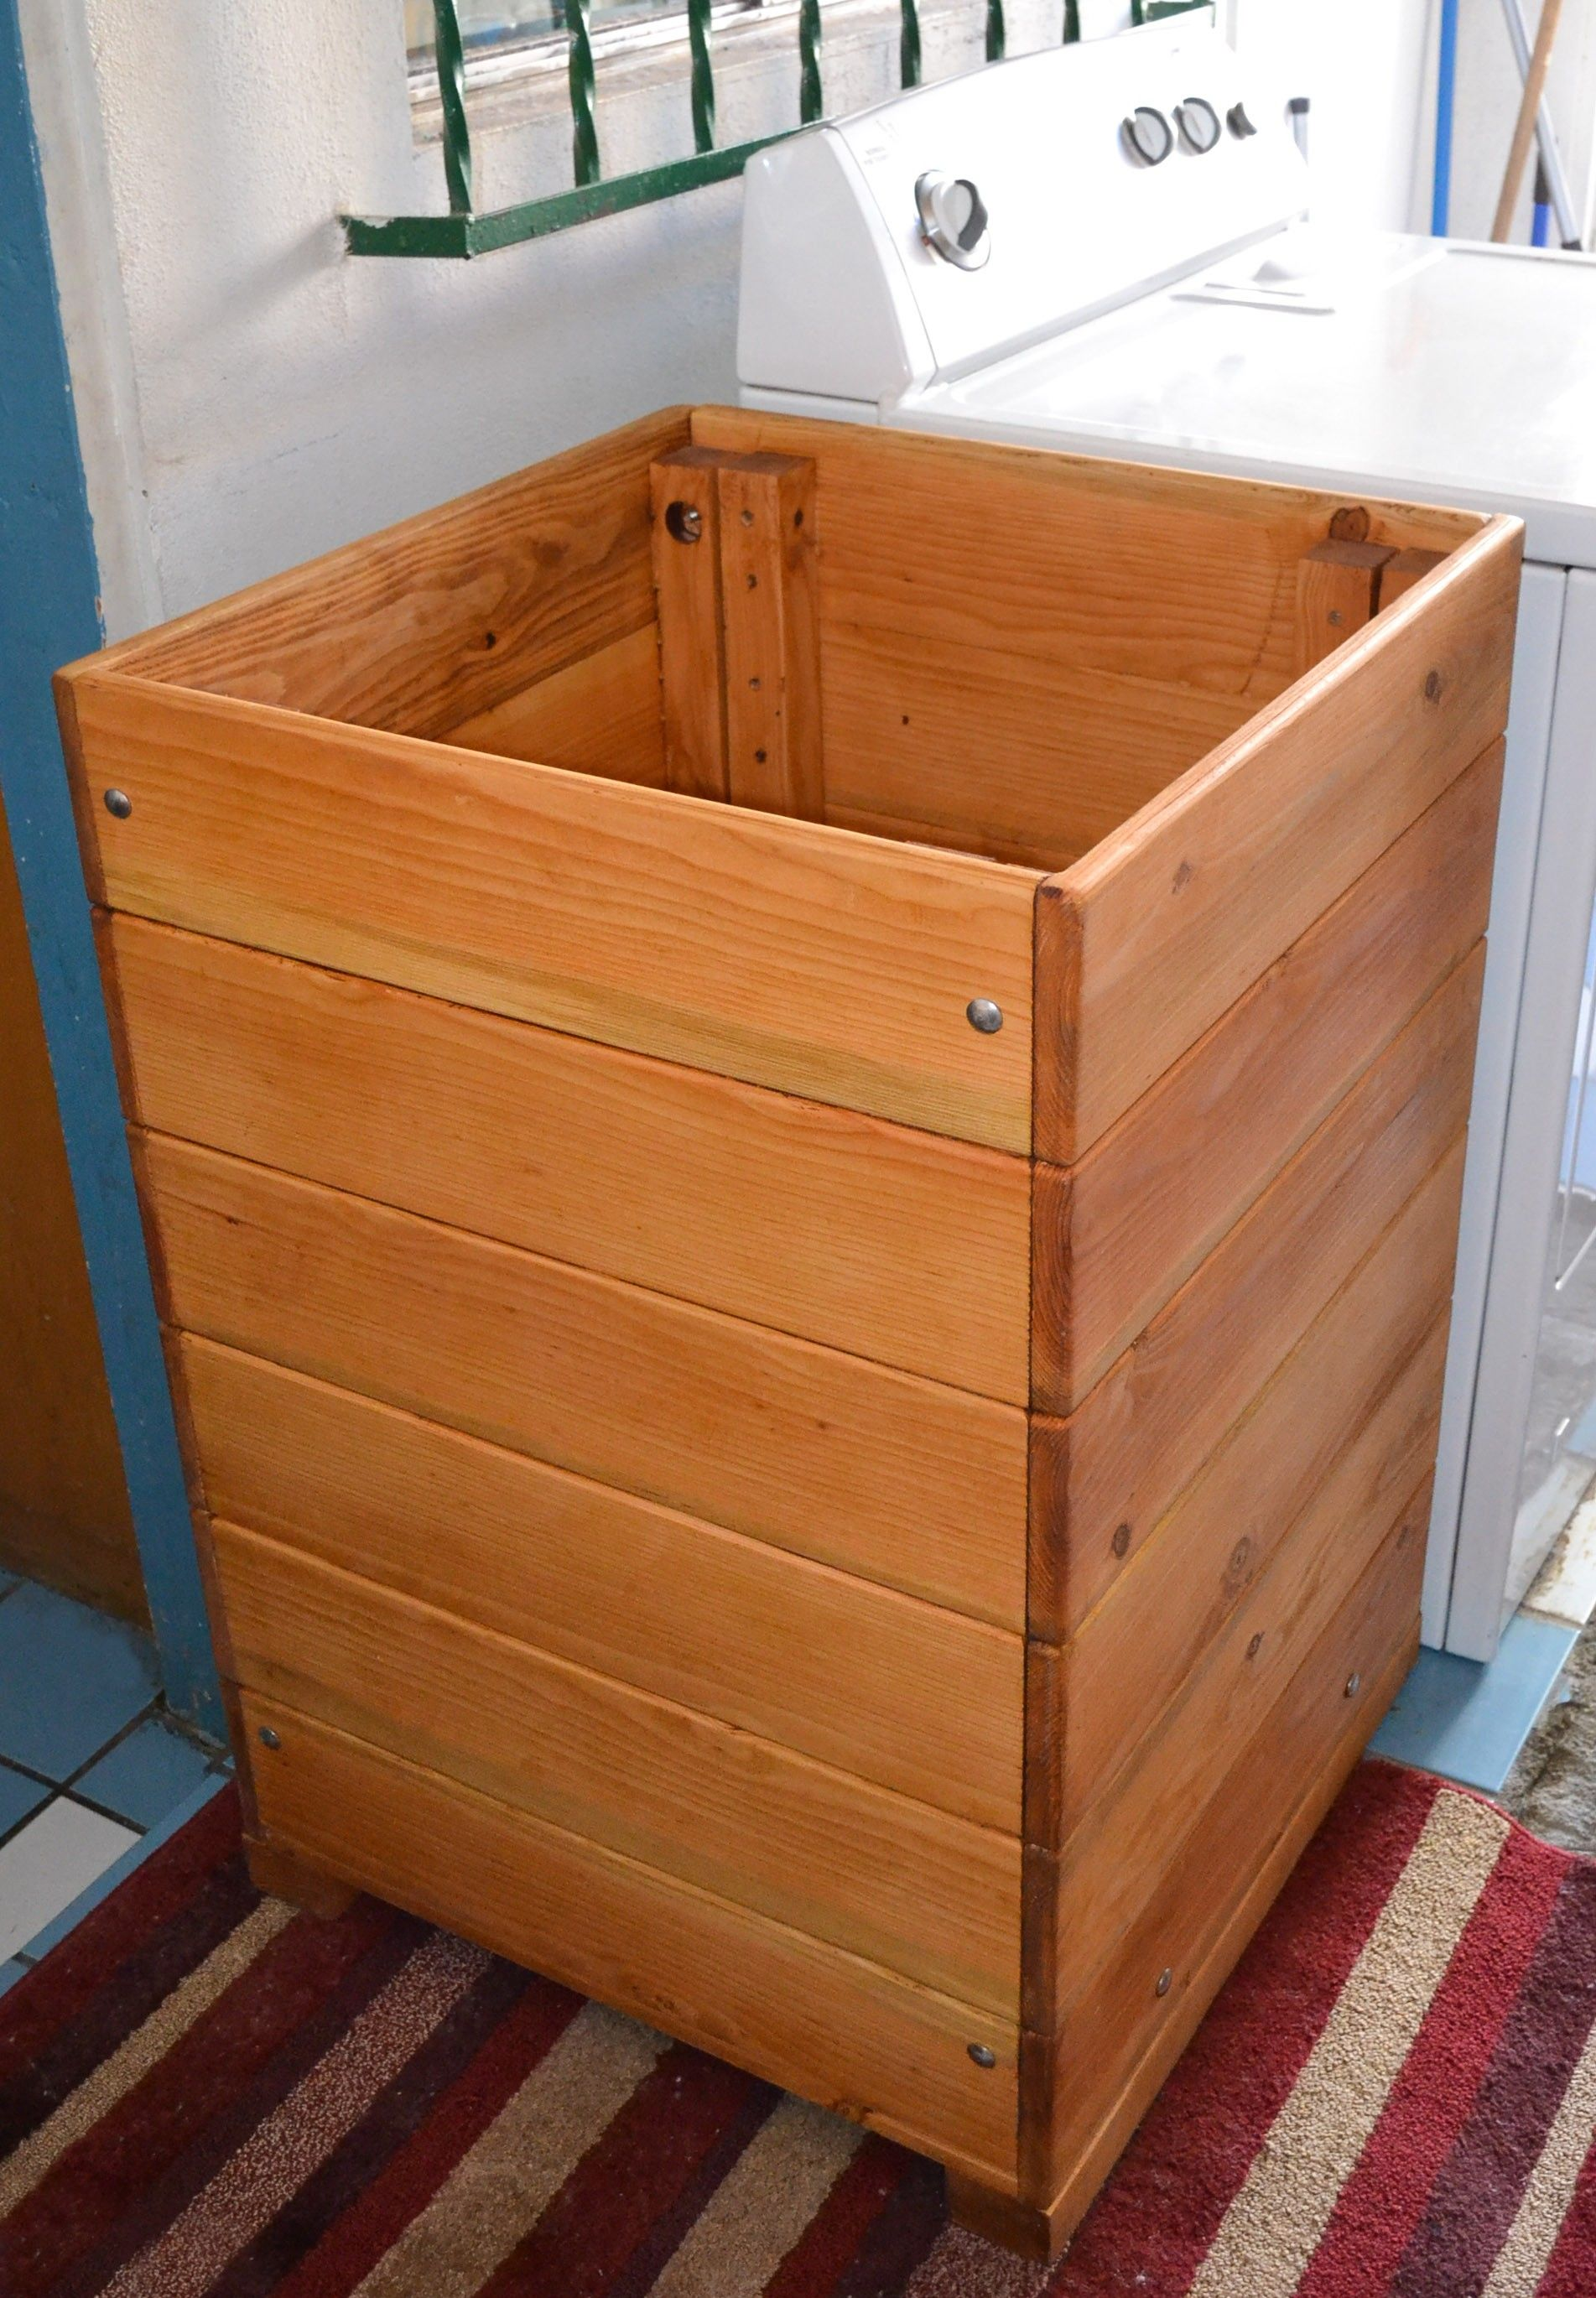 Superbe Rustic Wood Laundry Basket Hamper For Wooden Laundry Hamper Furniture